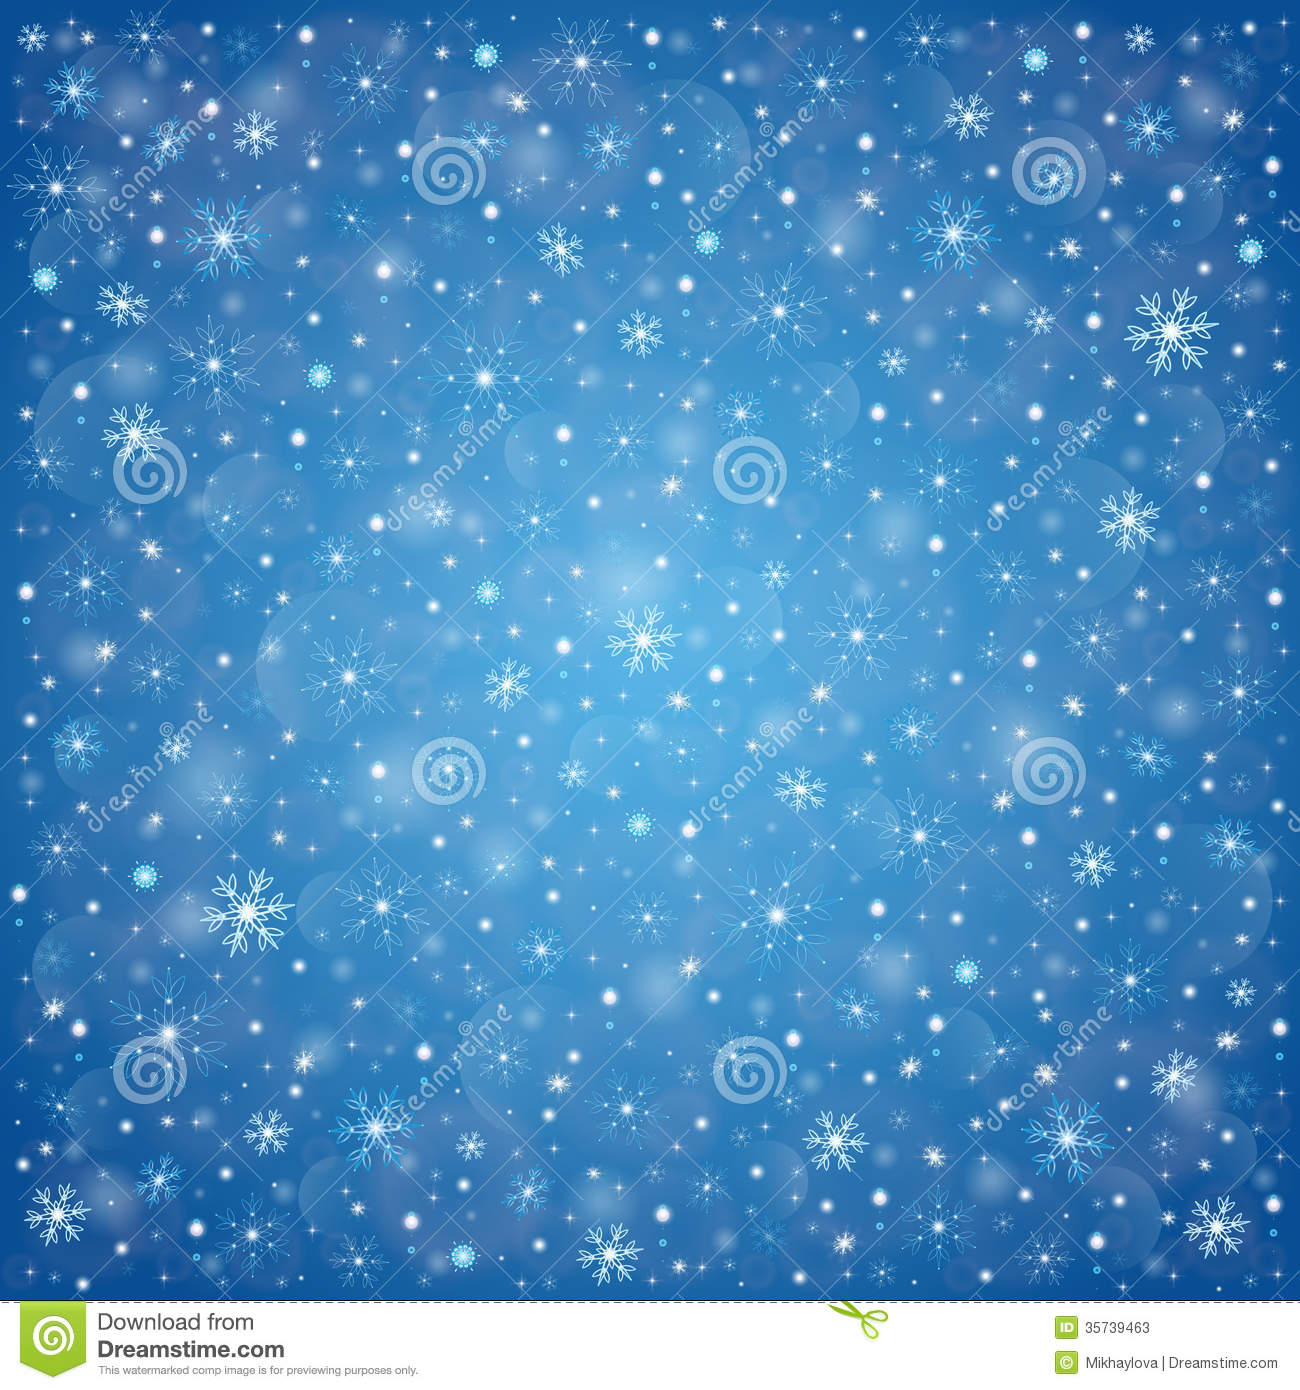 Free Christmas Falling Snow Wallpaper Winter Frosty Snow Background Stock Photos Image 35739463